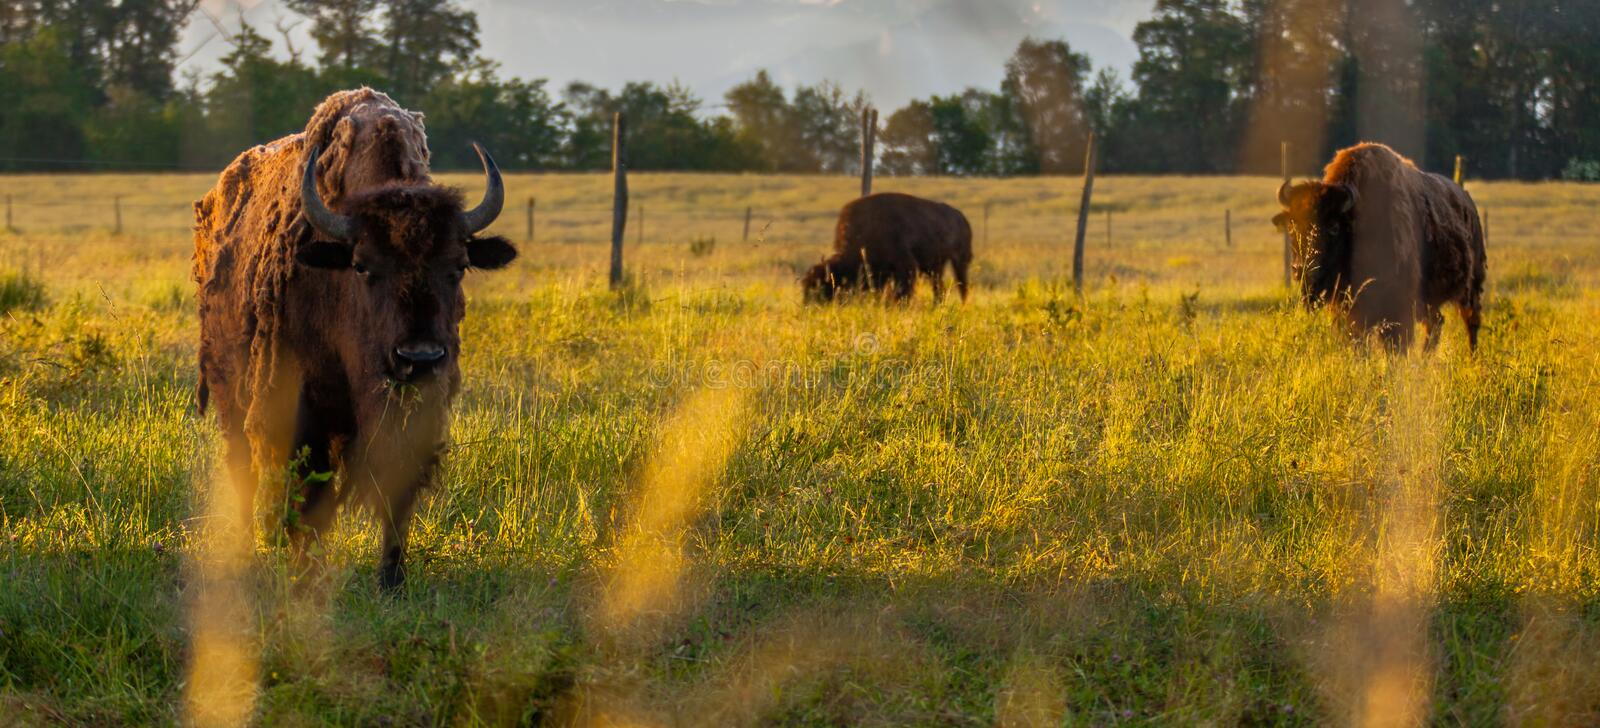 Download Bisons Royalty Free Stock Photos - Image: 25099428